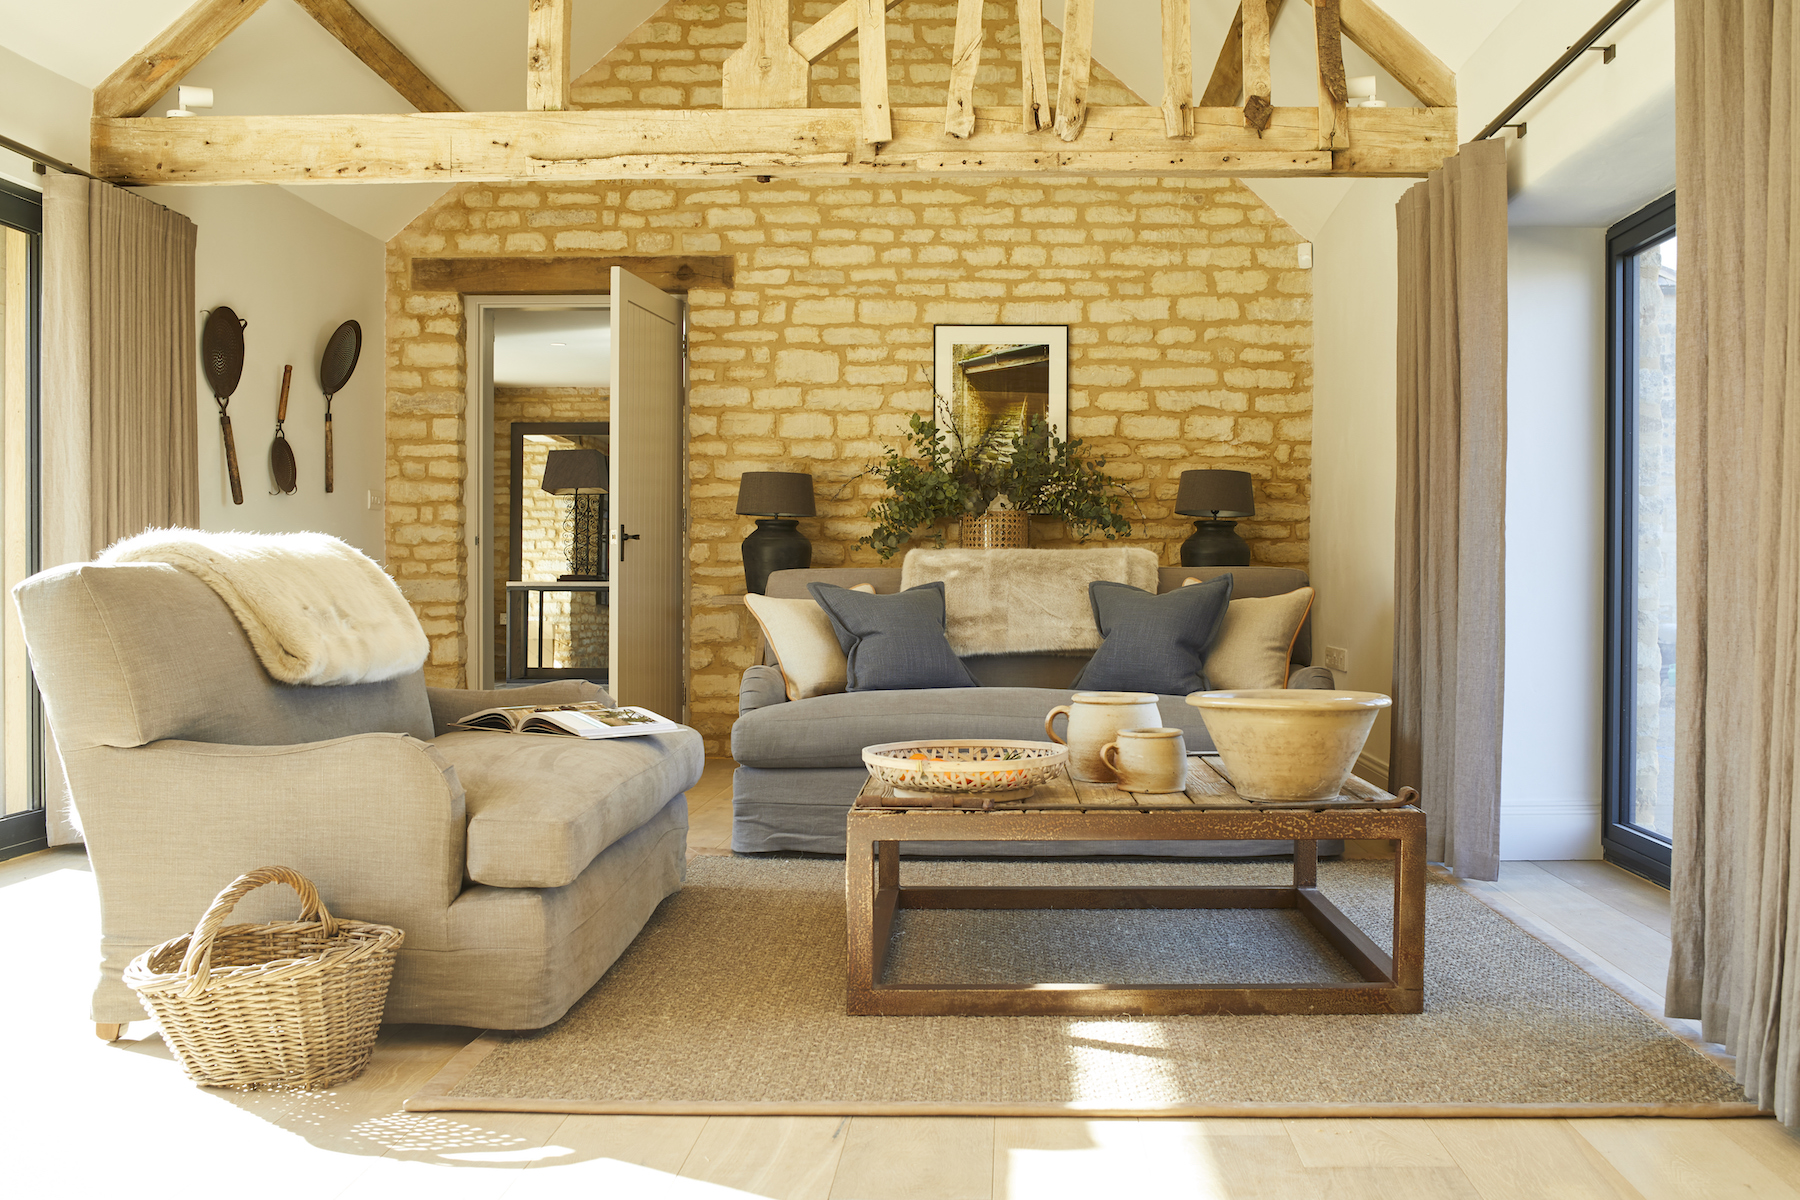 Bibury Farm Barns | Humphrey Munson